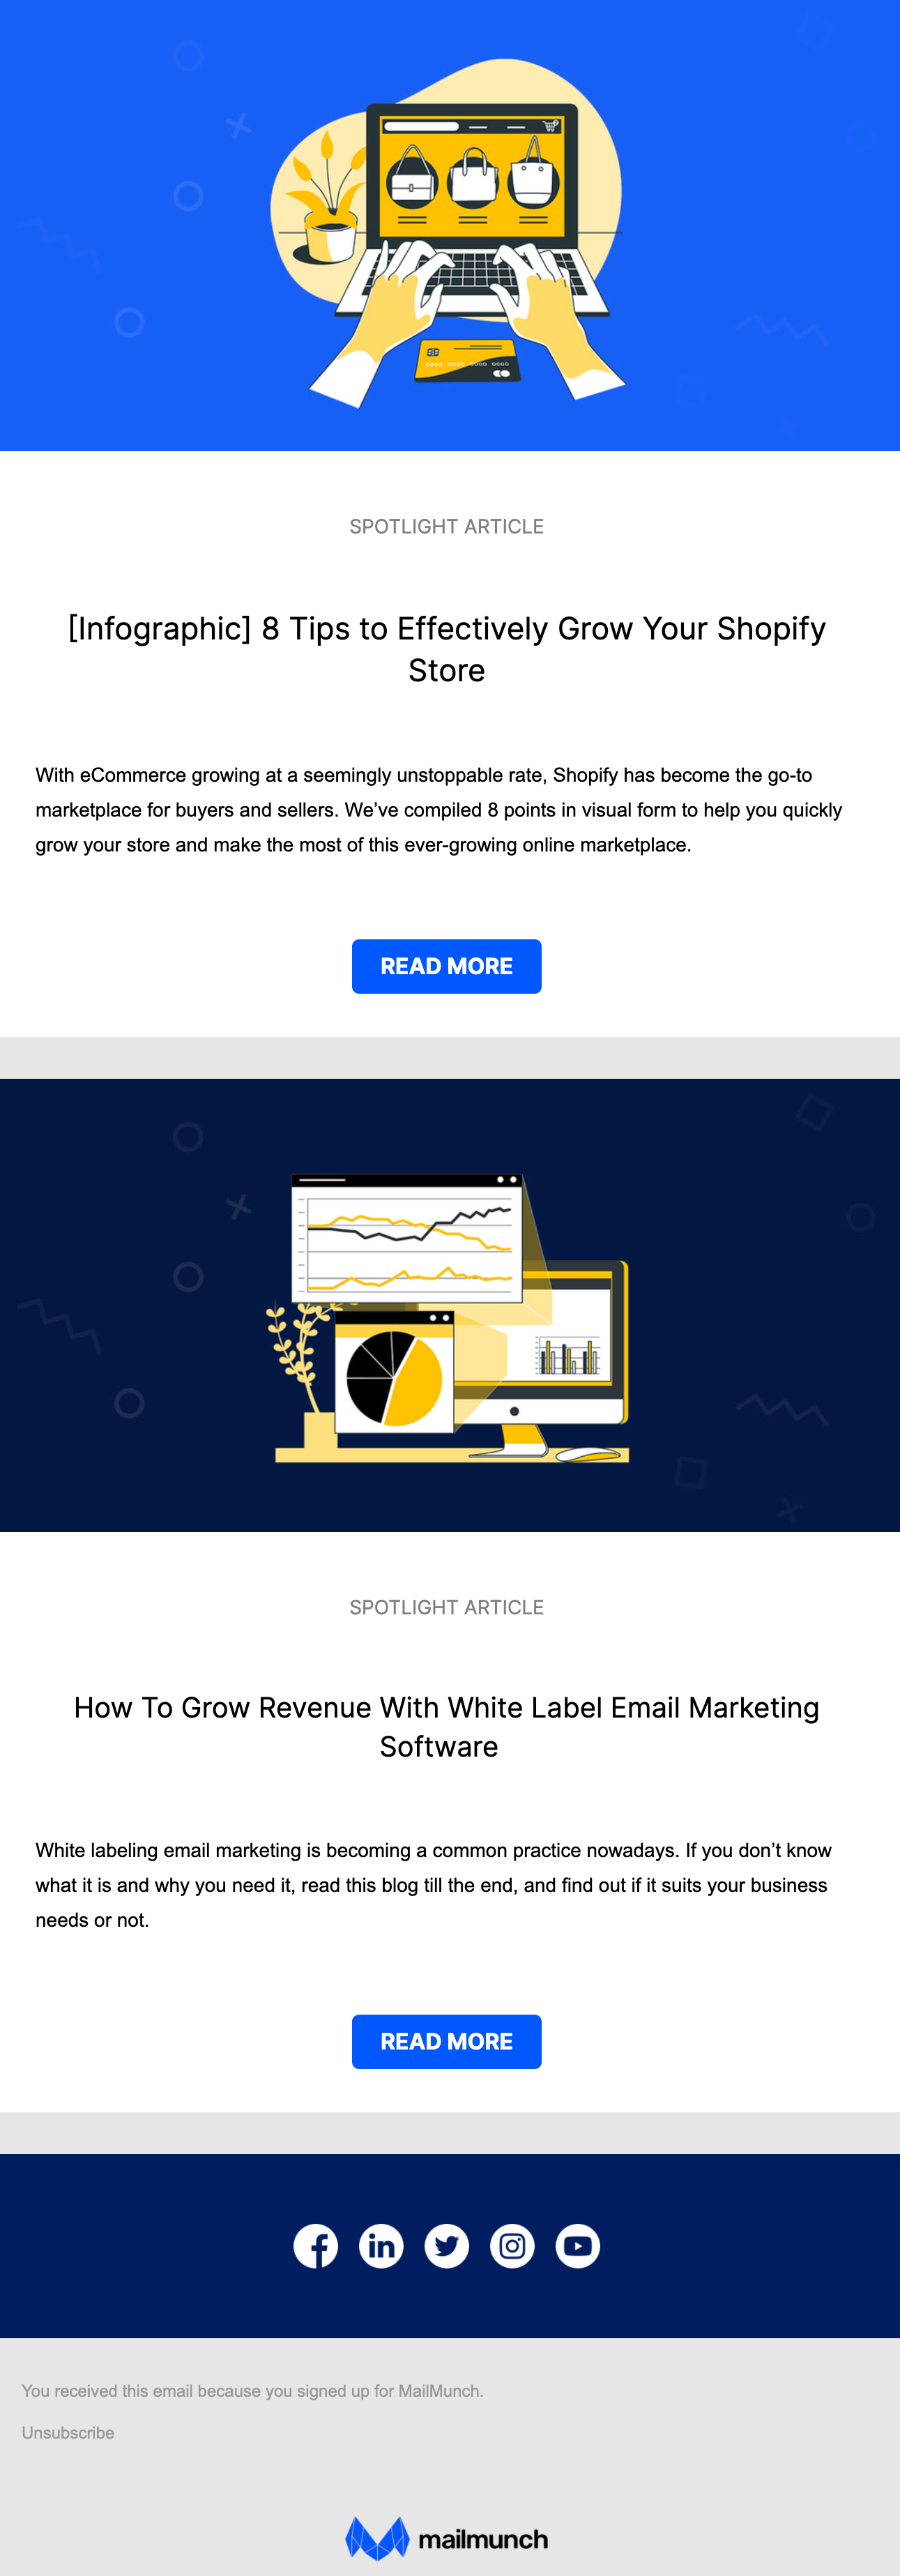 email newsletter from Mailmunch